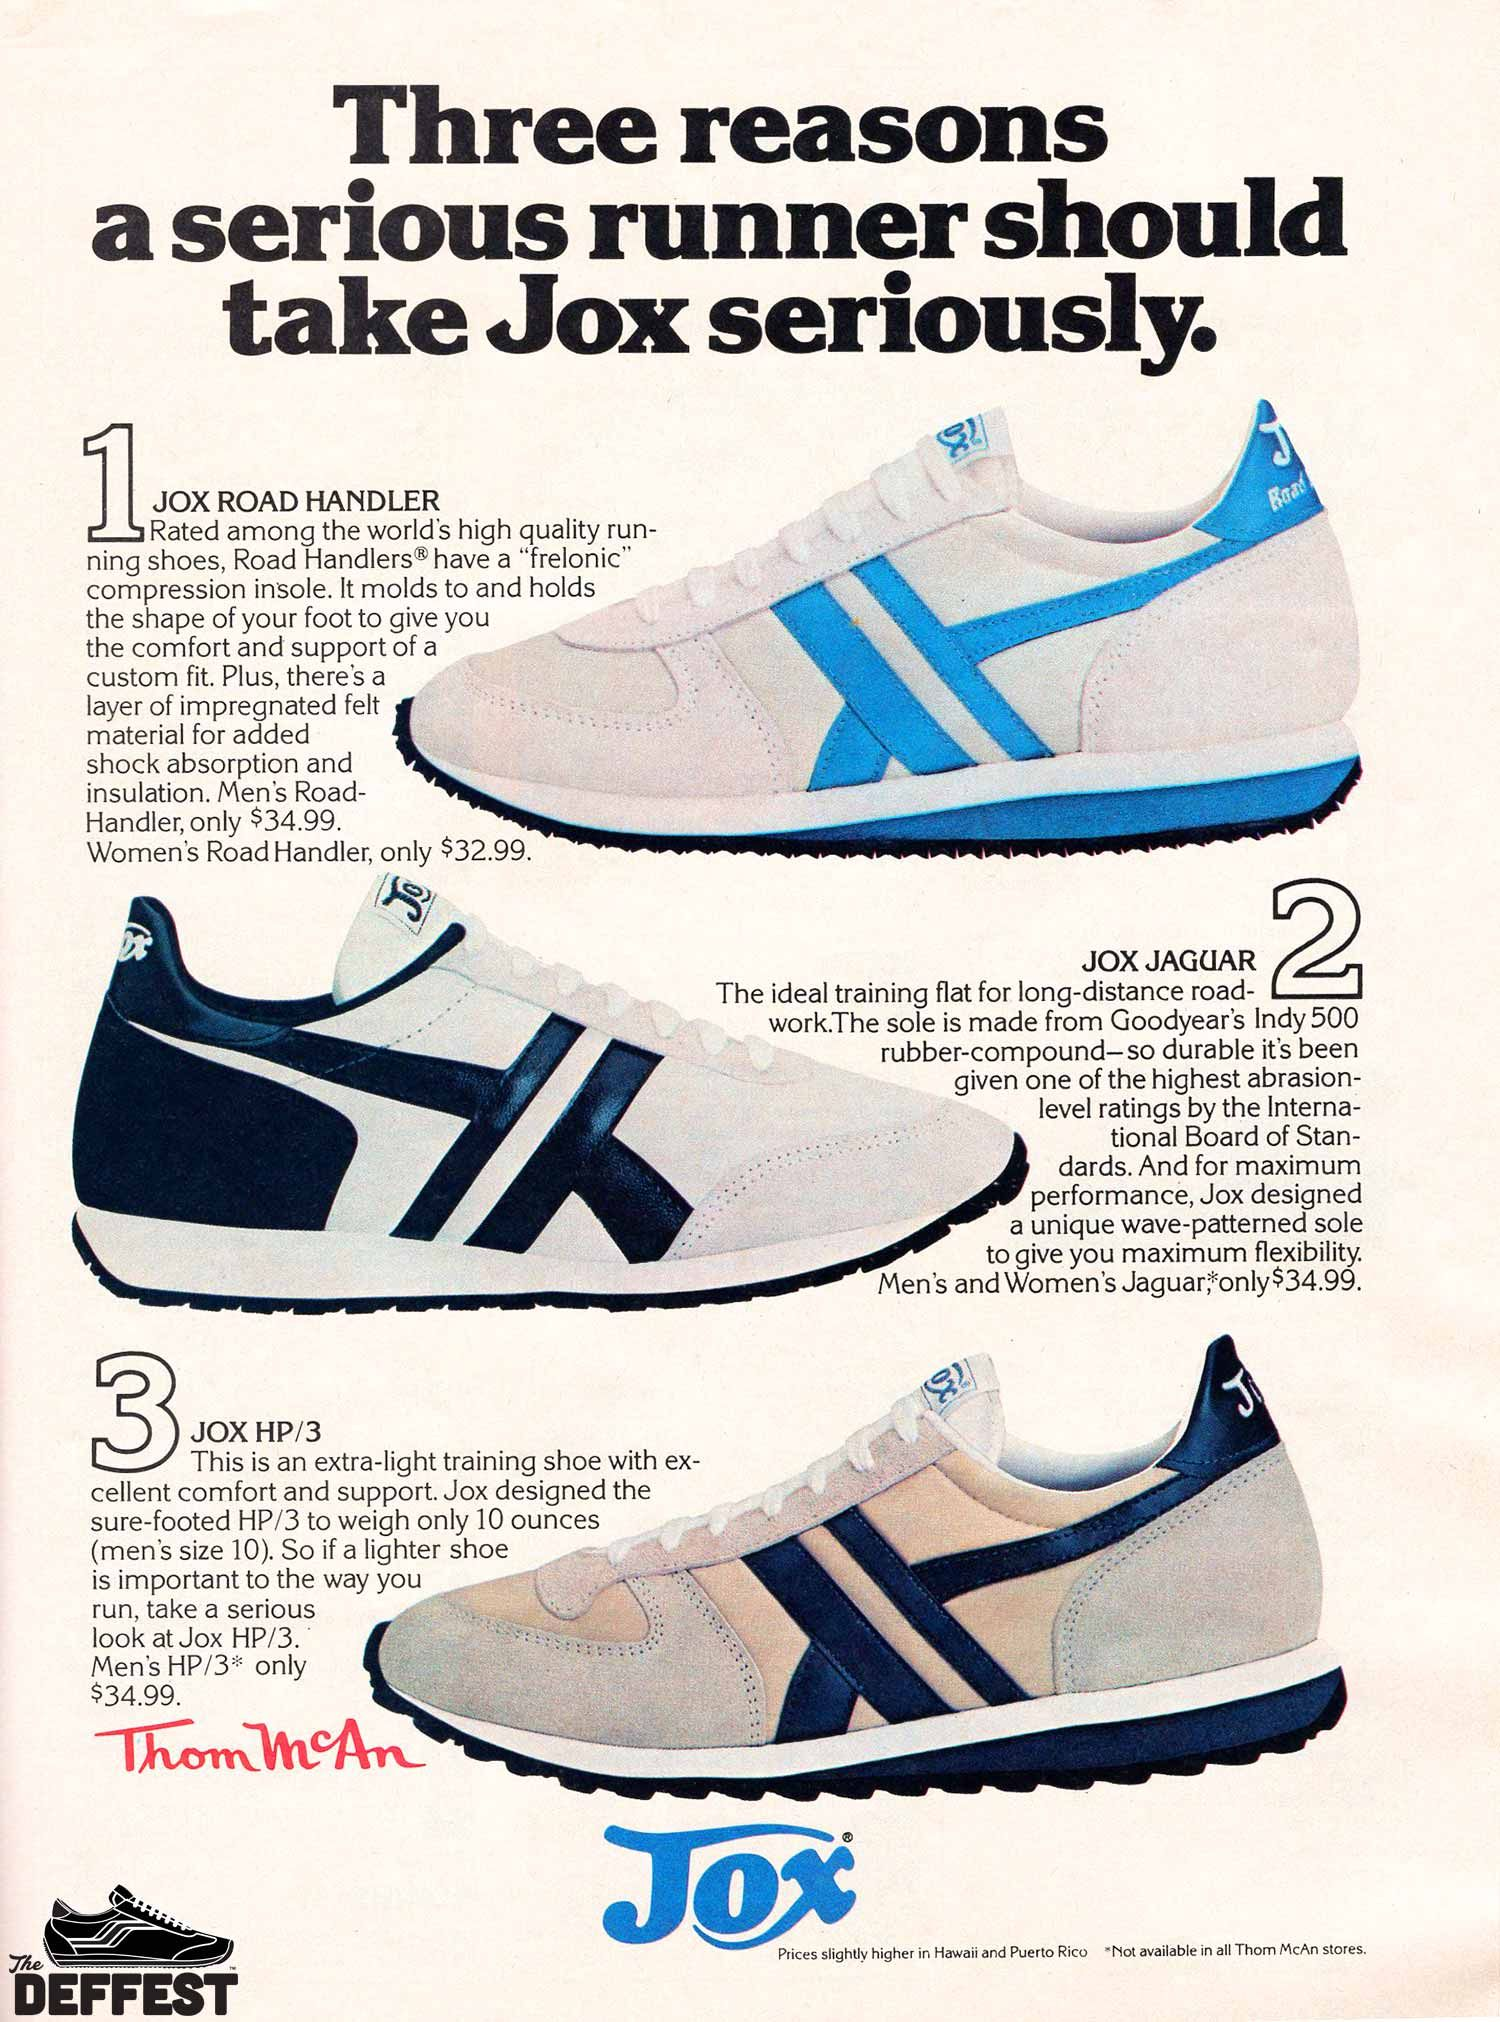 Bruce Jenner 1978 Vintage Running Shoes Sneakers Sz 10 10 5